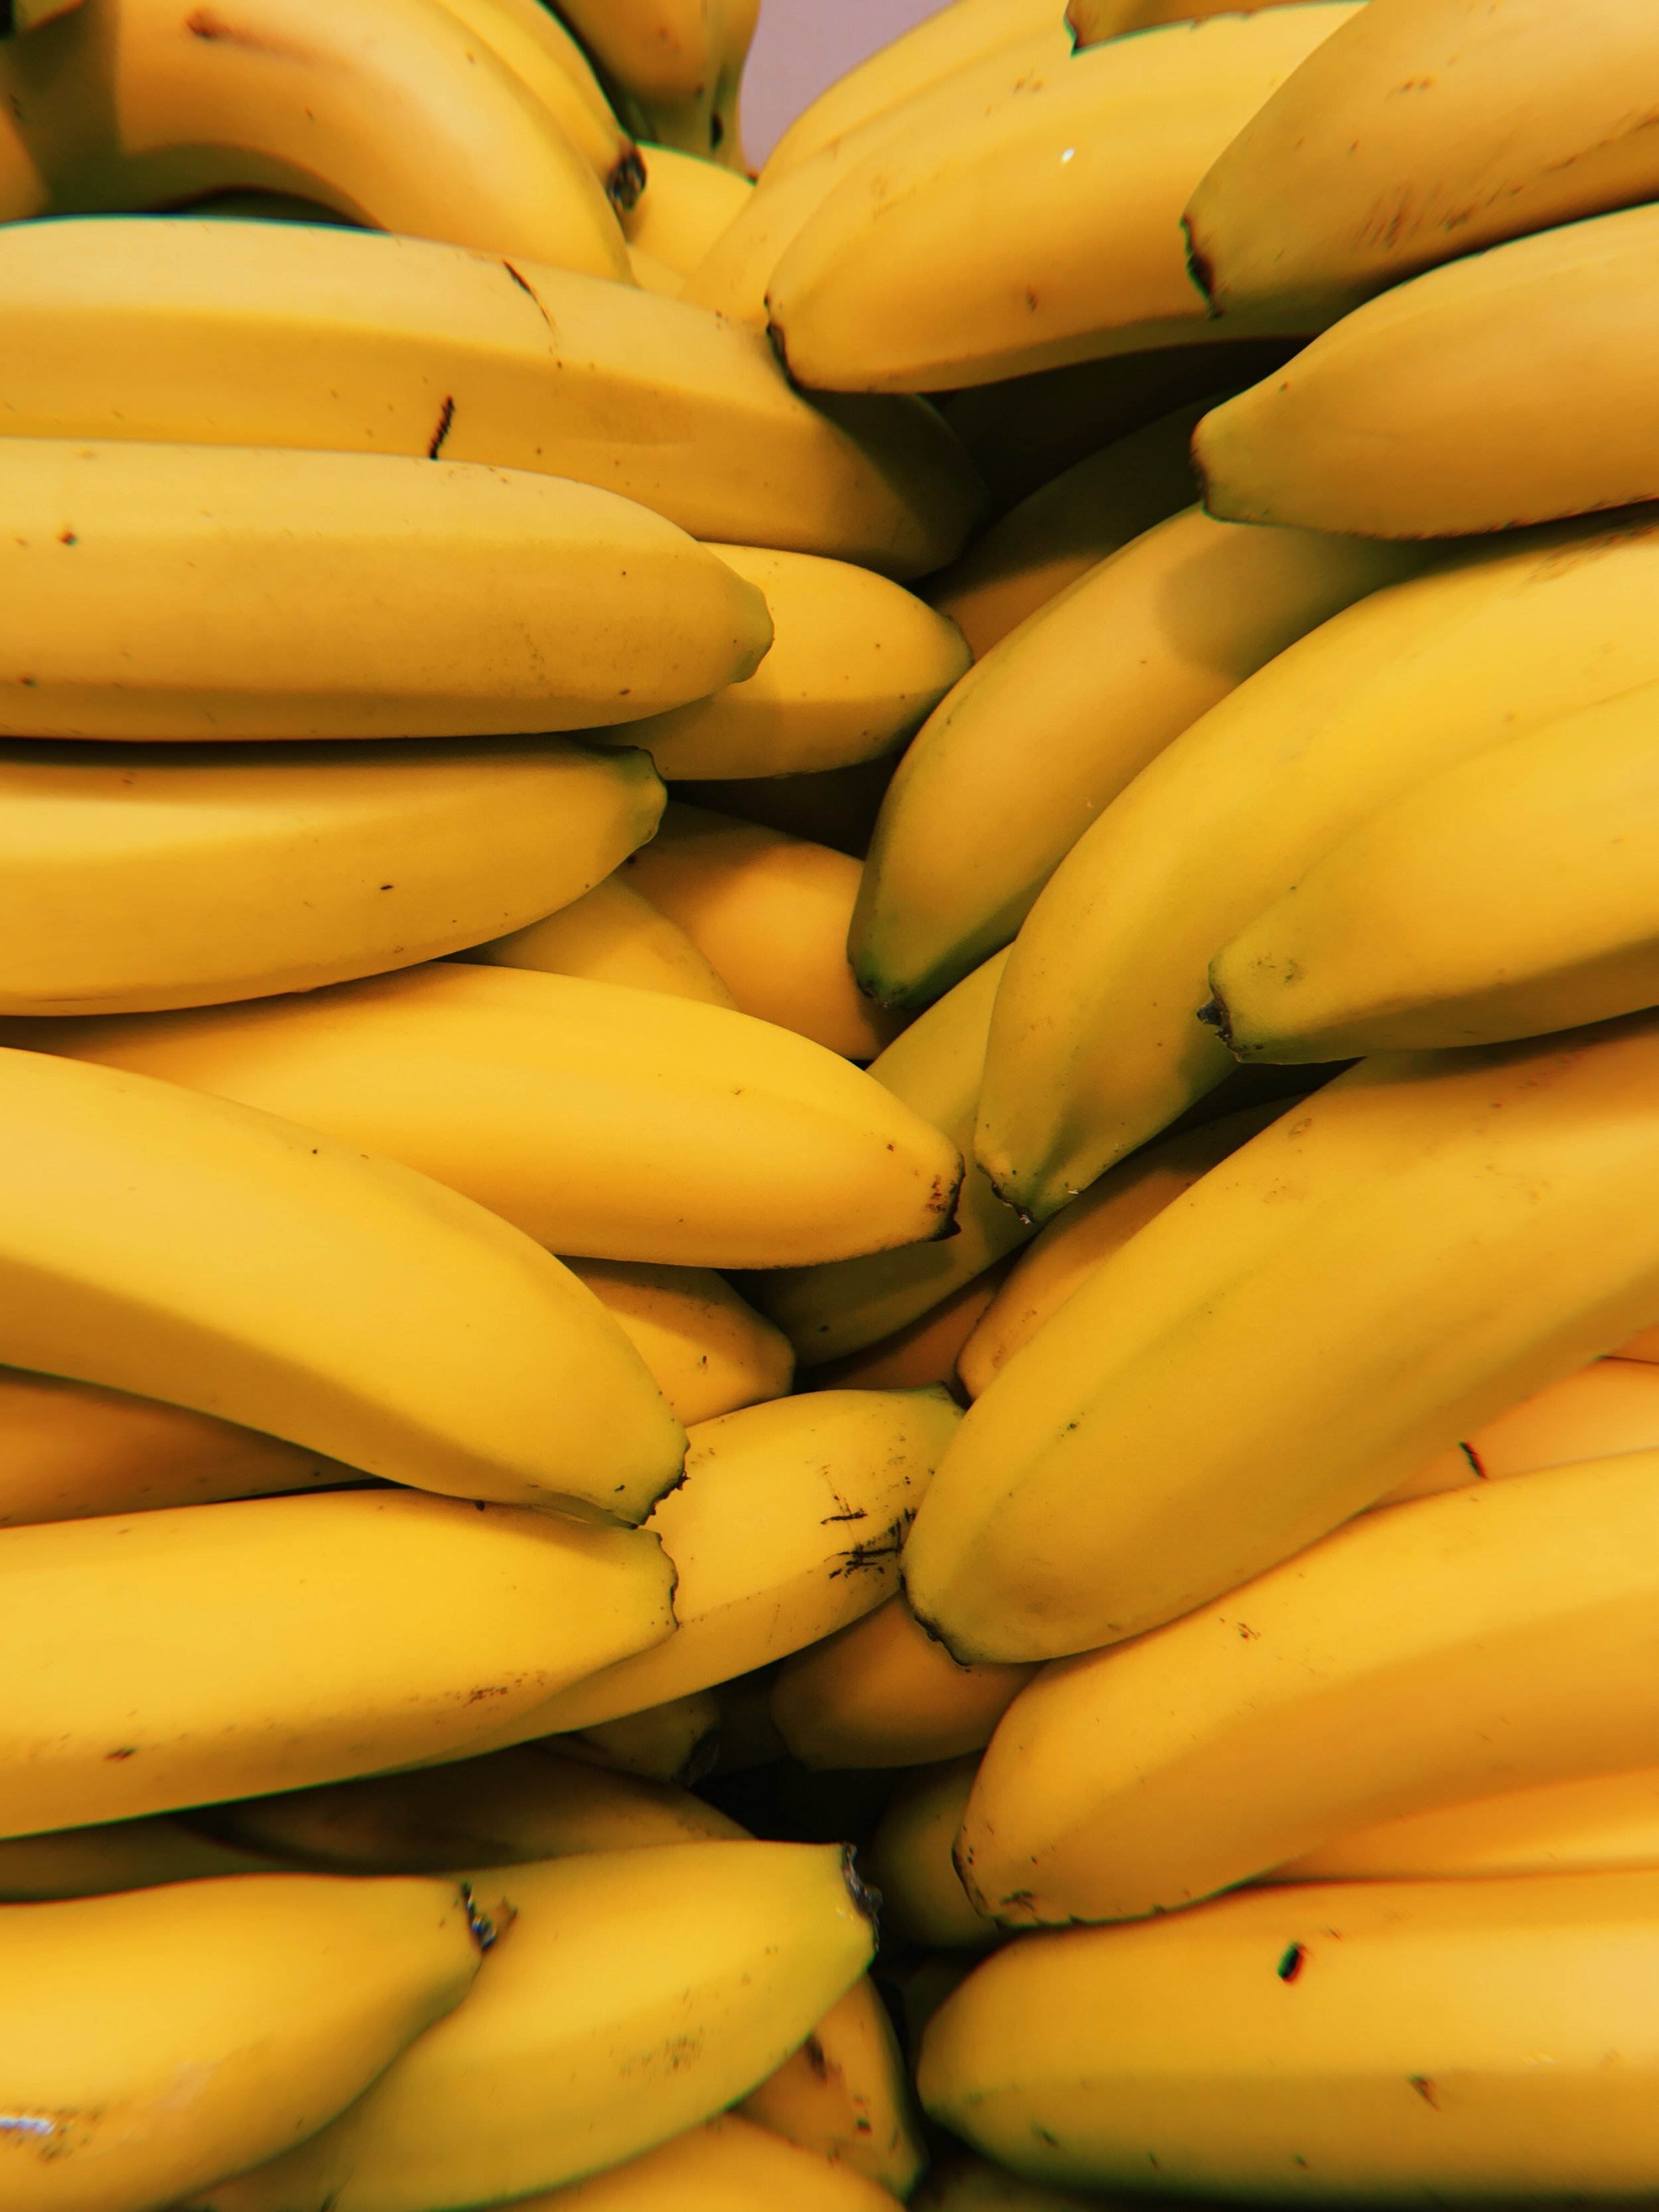 Bananas have anywhere from 300-500 milligrams (mg) of potassium! That can be a quarter of a day's potassium for some people needing to severely limit.